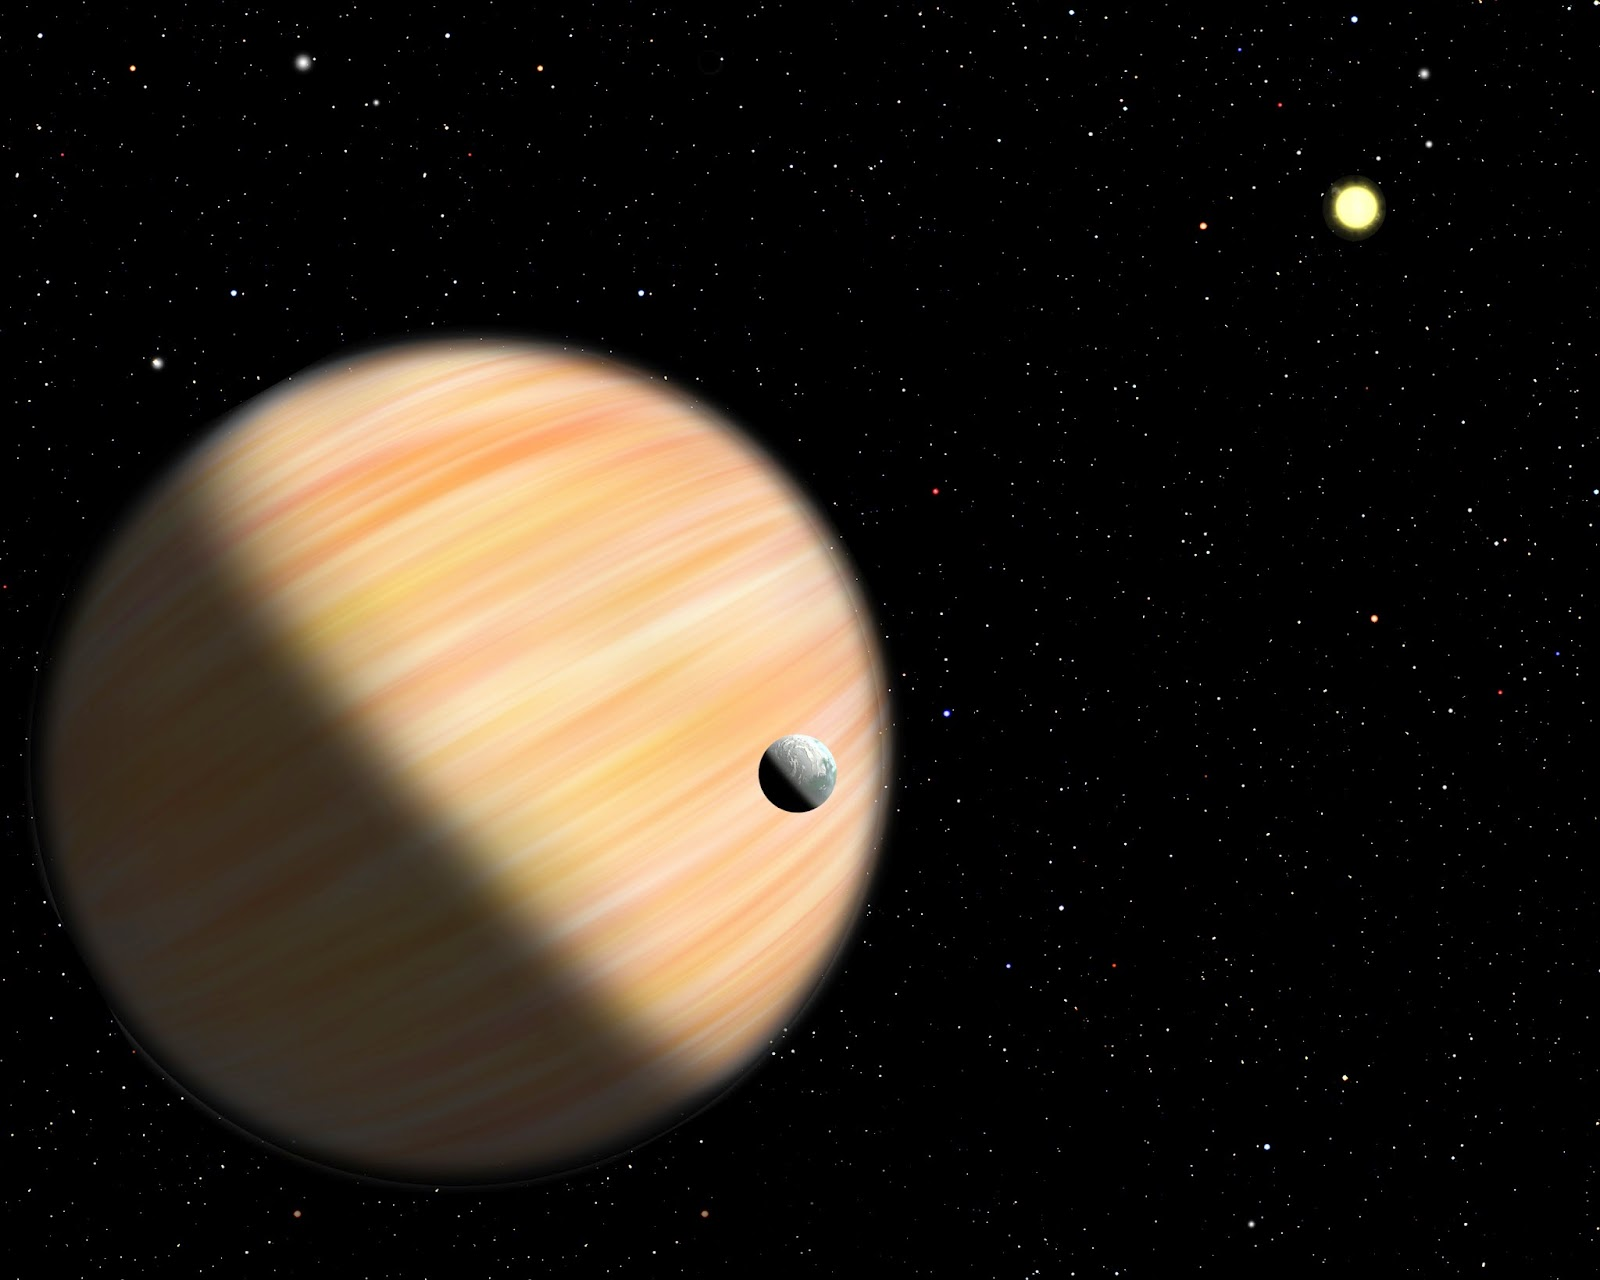 This artist's conception shows a planet half as massive as Jupiter located 13,000 light-years from Earth. It was detected by the Optical Gravitational Lensing Experiment and NASA's Spitzer Space Telescope using microlensing. Spitzer provided parallax measurements that allowed scientists to determine how far away the planet is. Credit: Christine Pulliam (CfA)